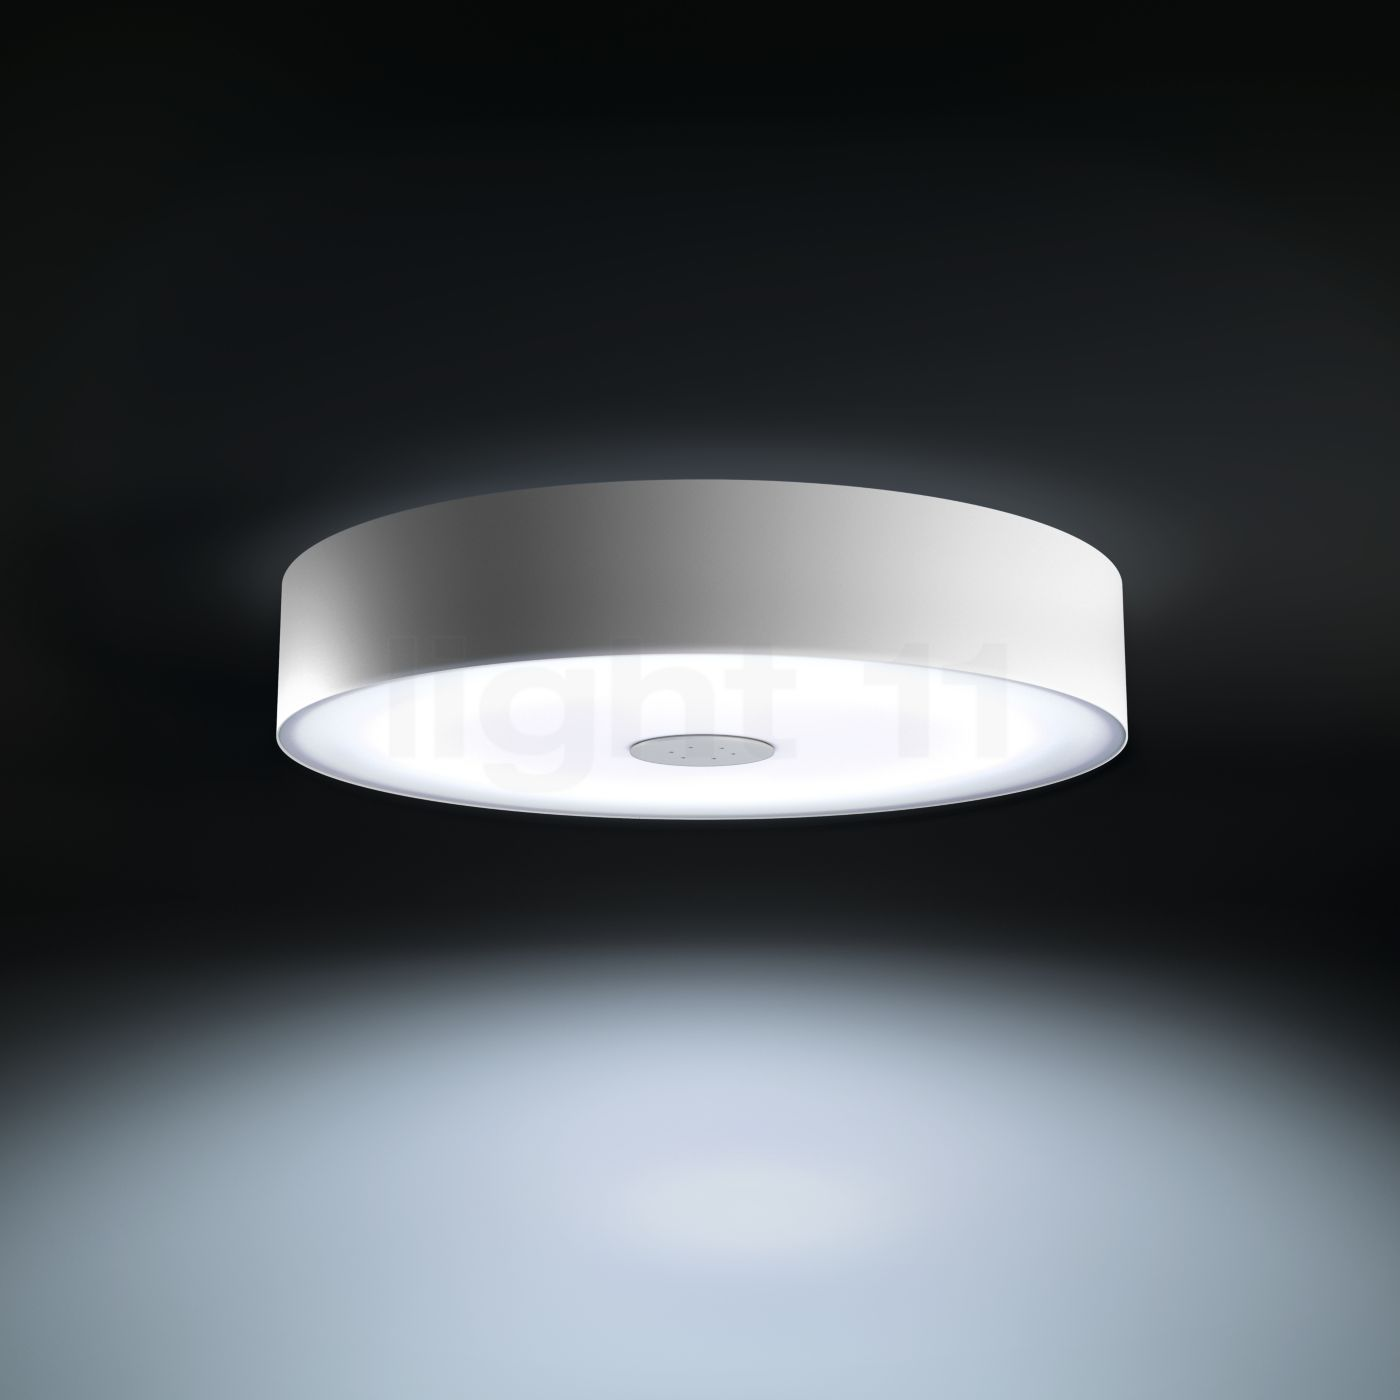 Philips Hue White Ambiance Fair Ceiling Light Interior